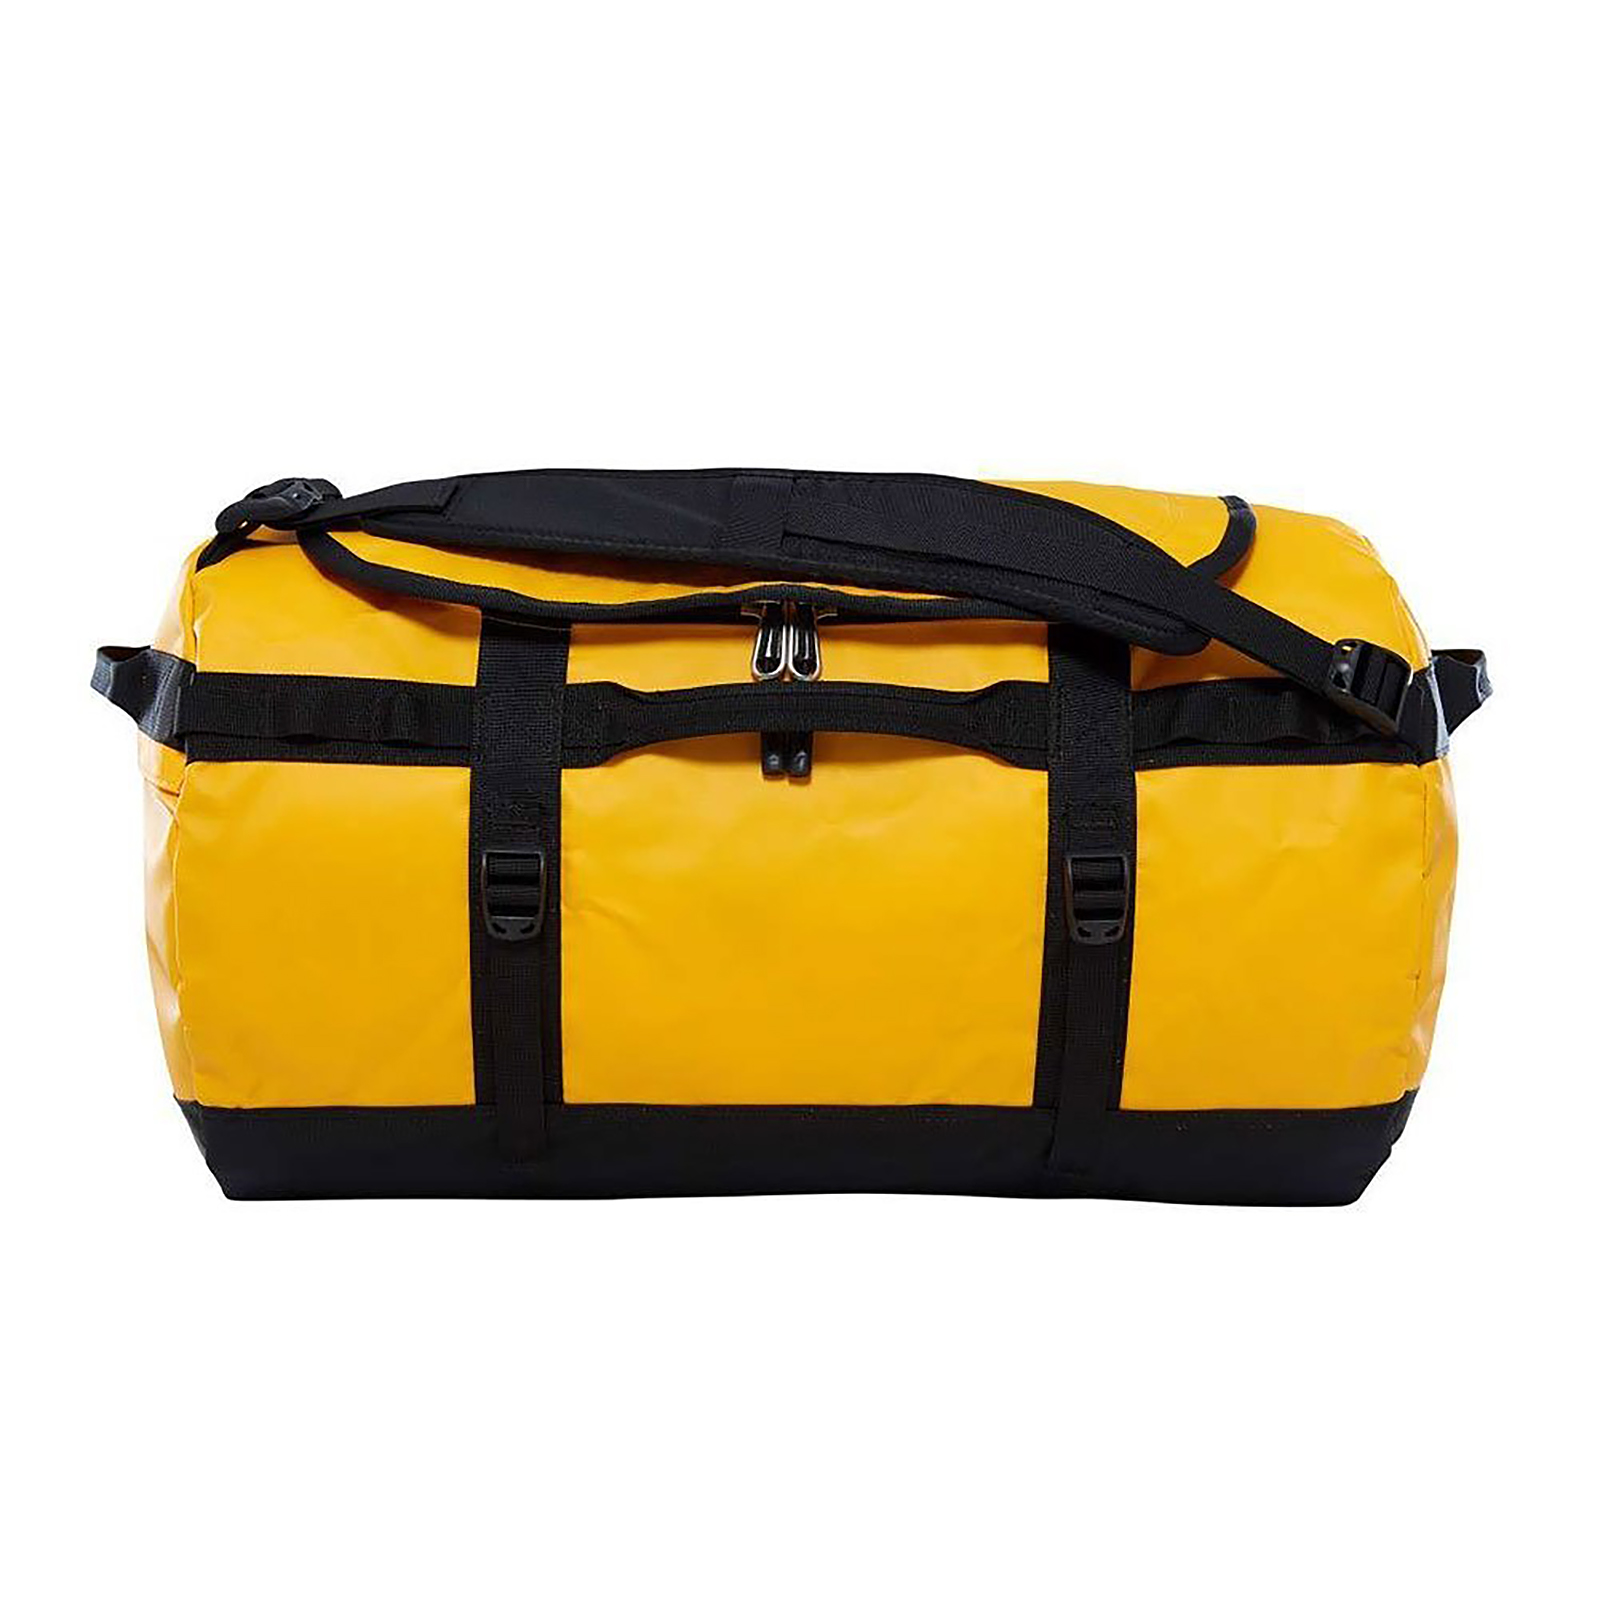 73e9d8d51 Details about The north face Bags Shoulder Base Camp Duffel S Sumitgld /  Tnfbl Yellow Black